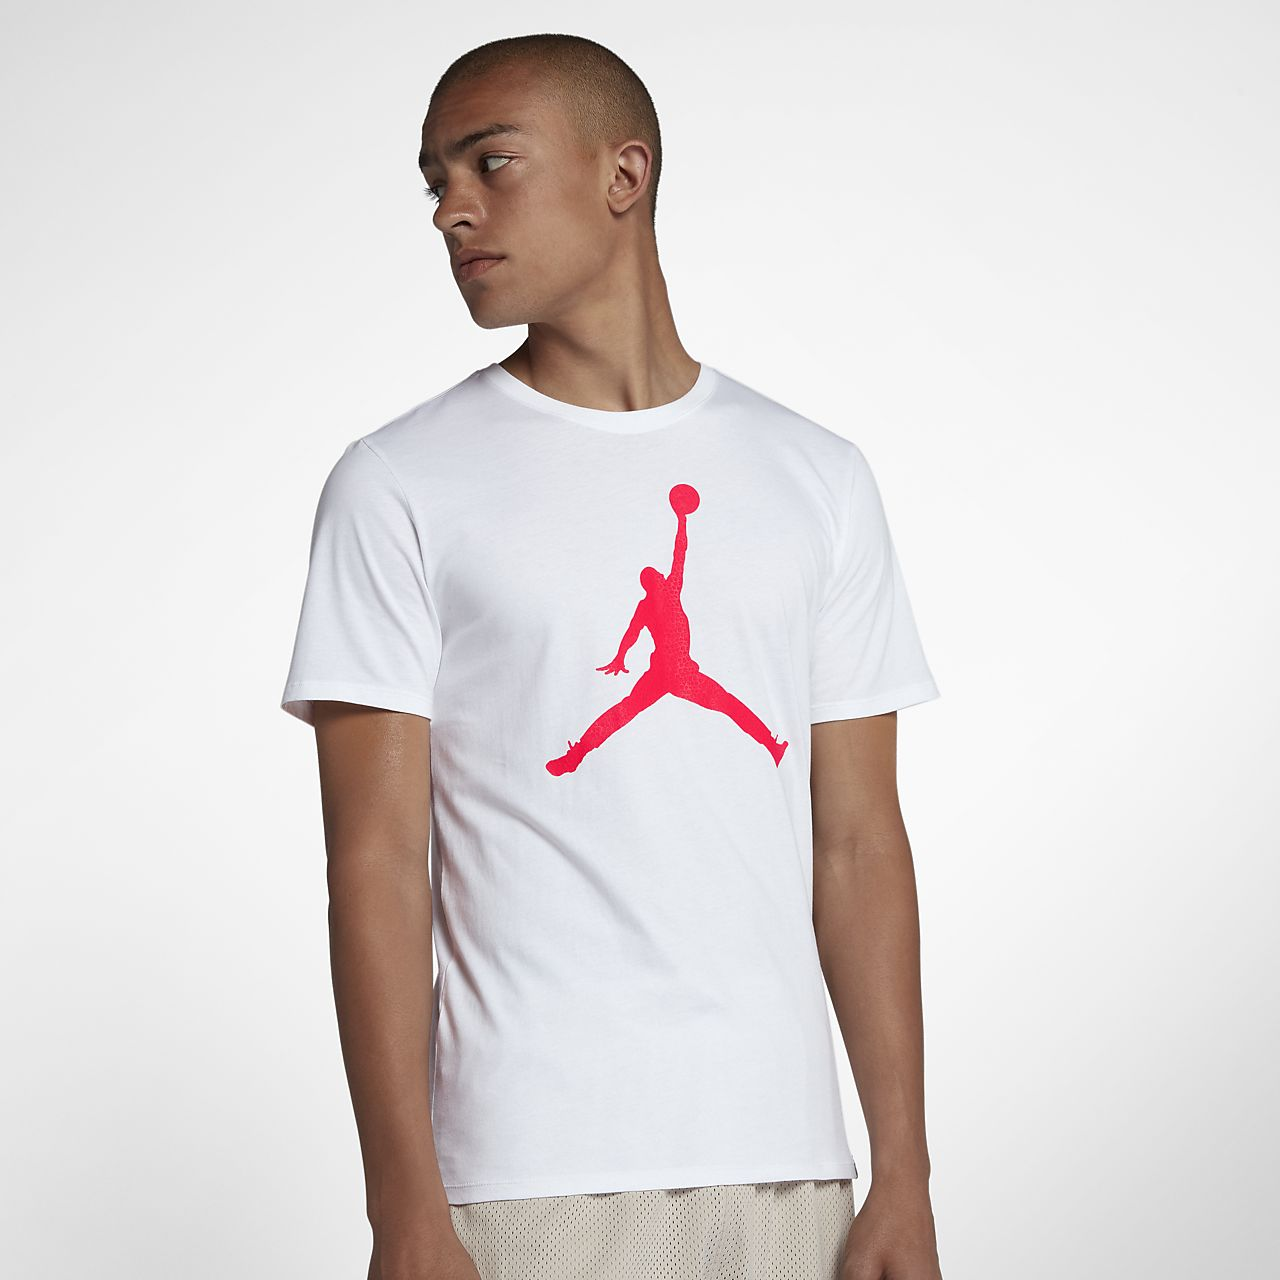 ... Jordan Lifestyle Iconic Jumpman Men's T-Shirt